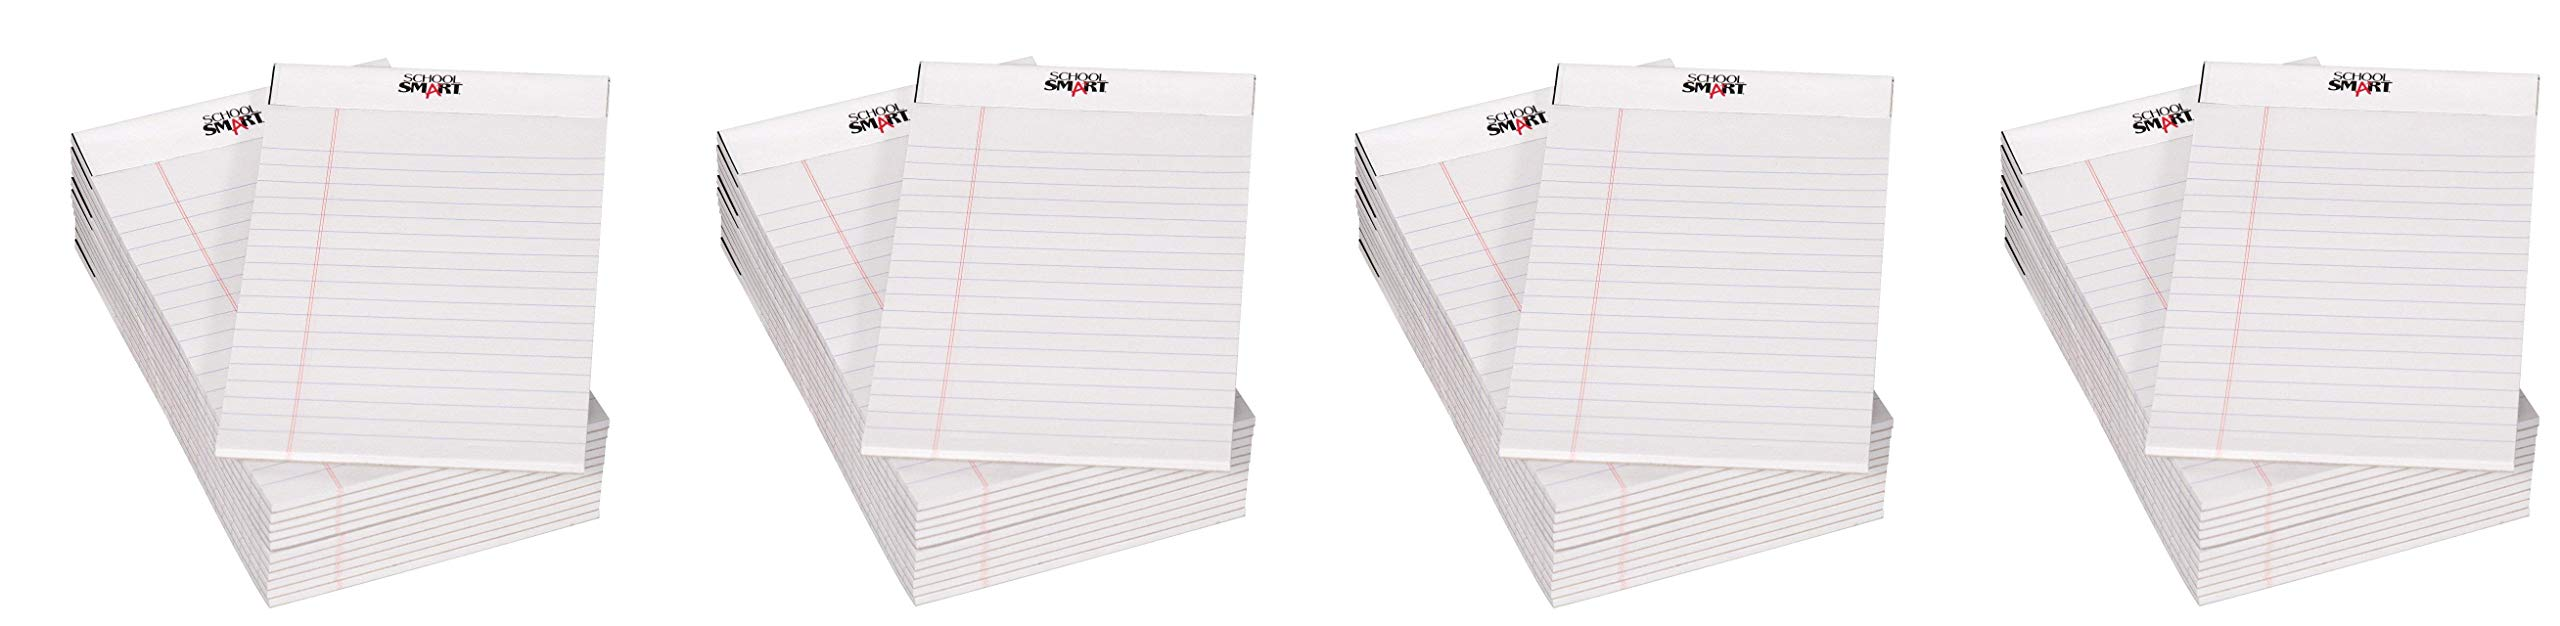 School Smart Junior Legal Pad, 5 x 8 Inches, 50 Sheets Each, White, Pack of 12 (Fоur Paсk, White) by School Smart